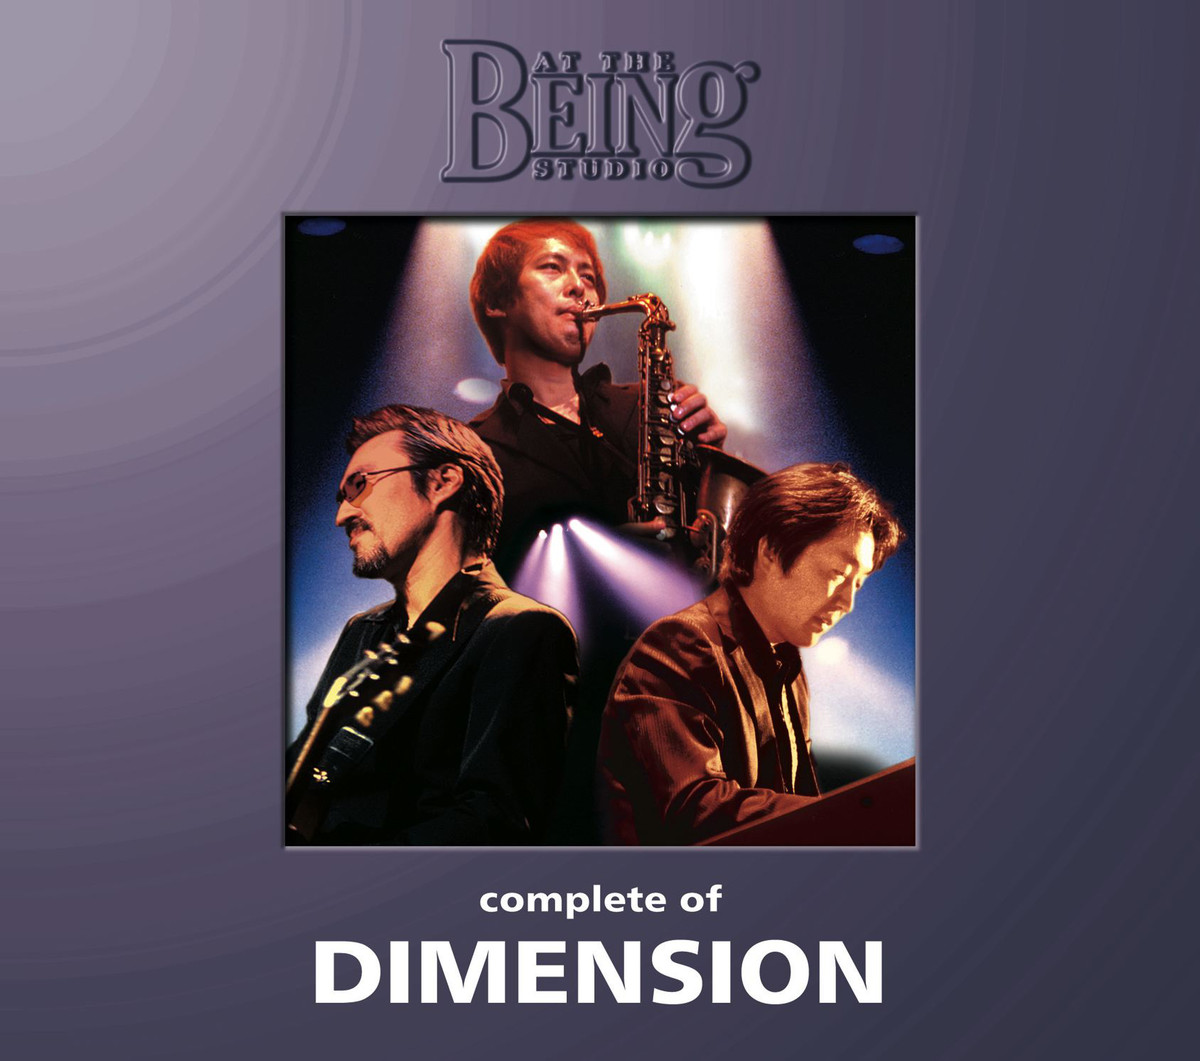 Dimension at the Being Studio